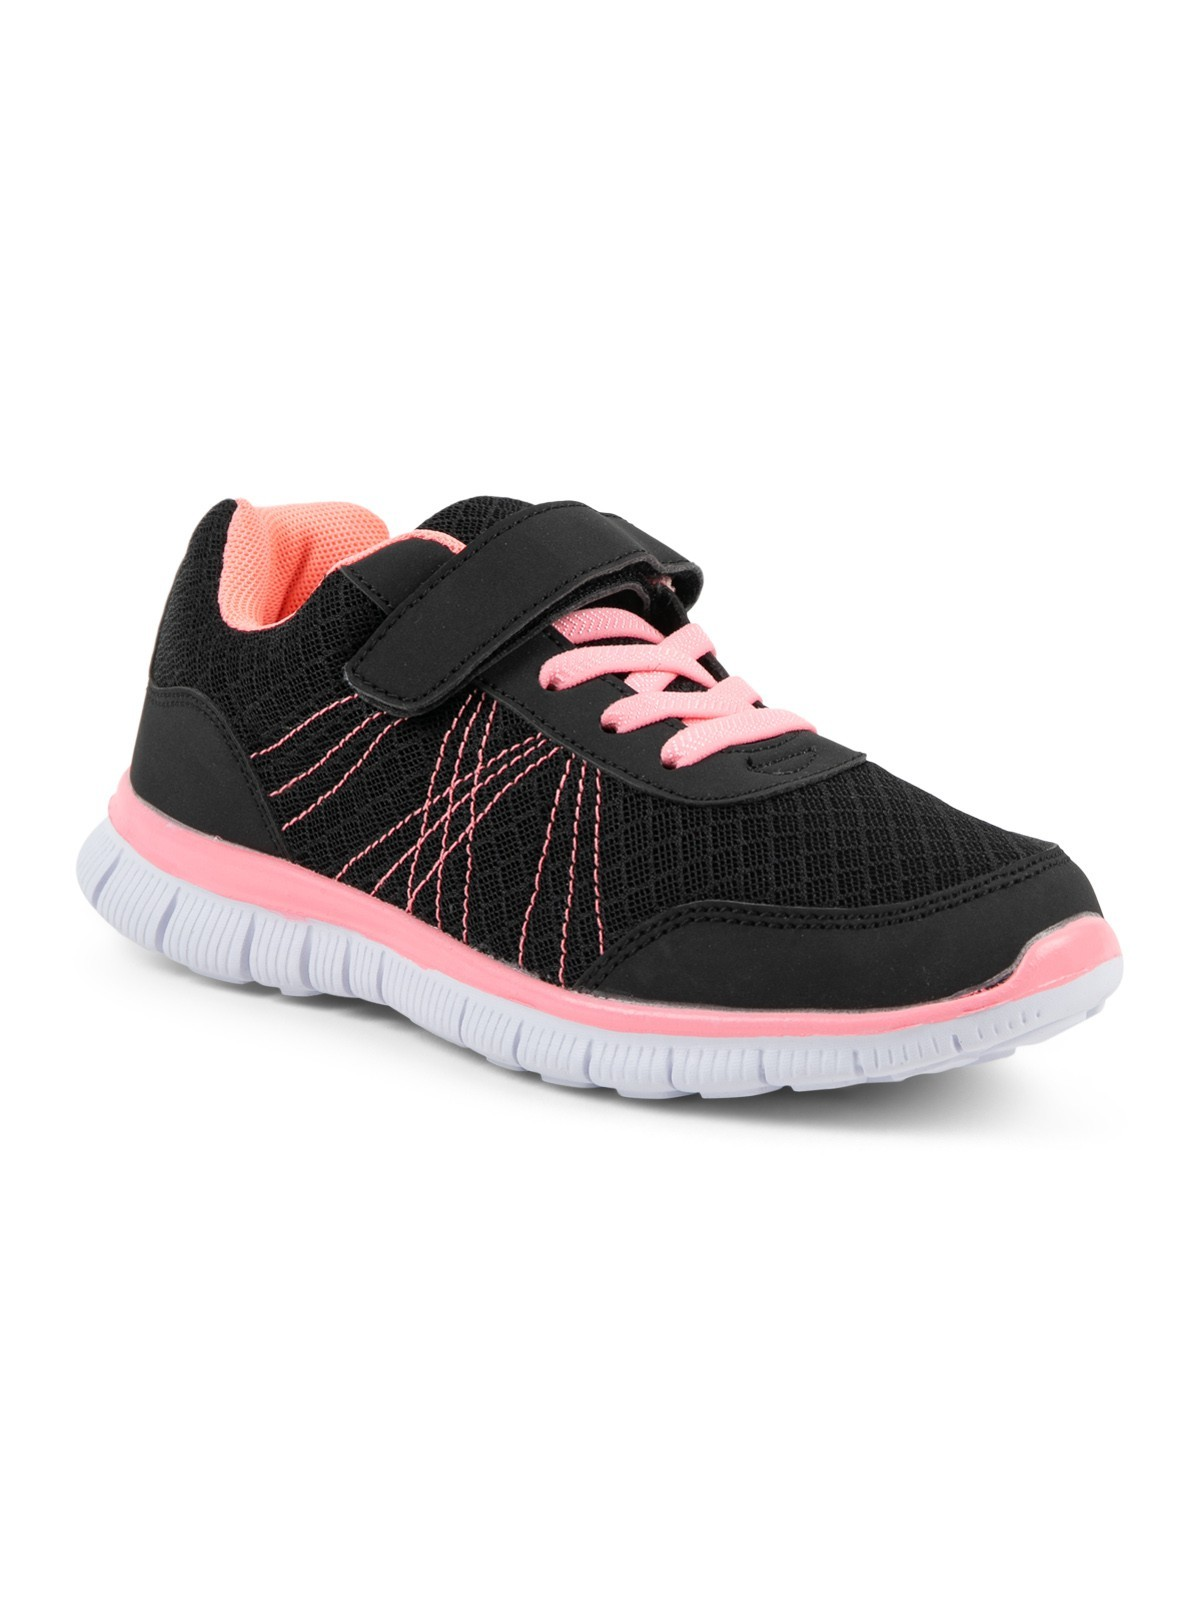 chaussure nike fille 30